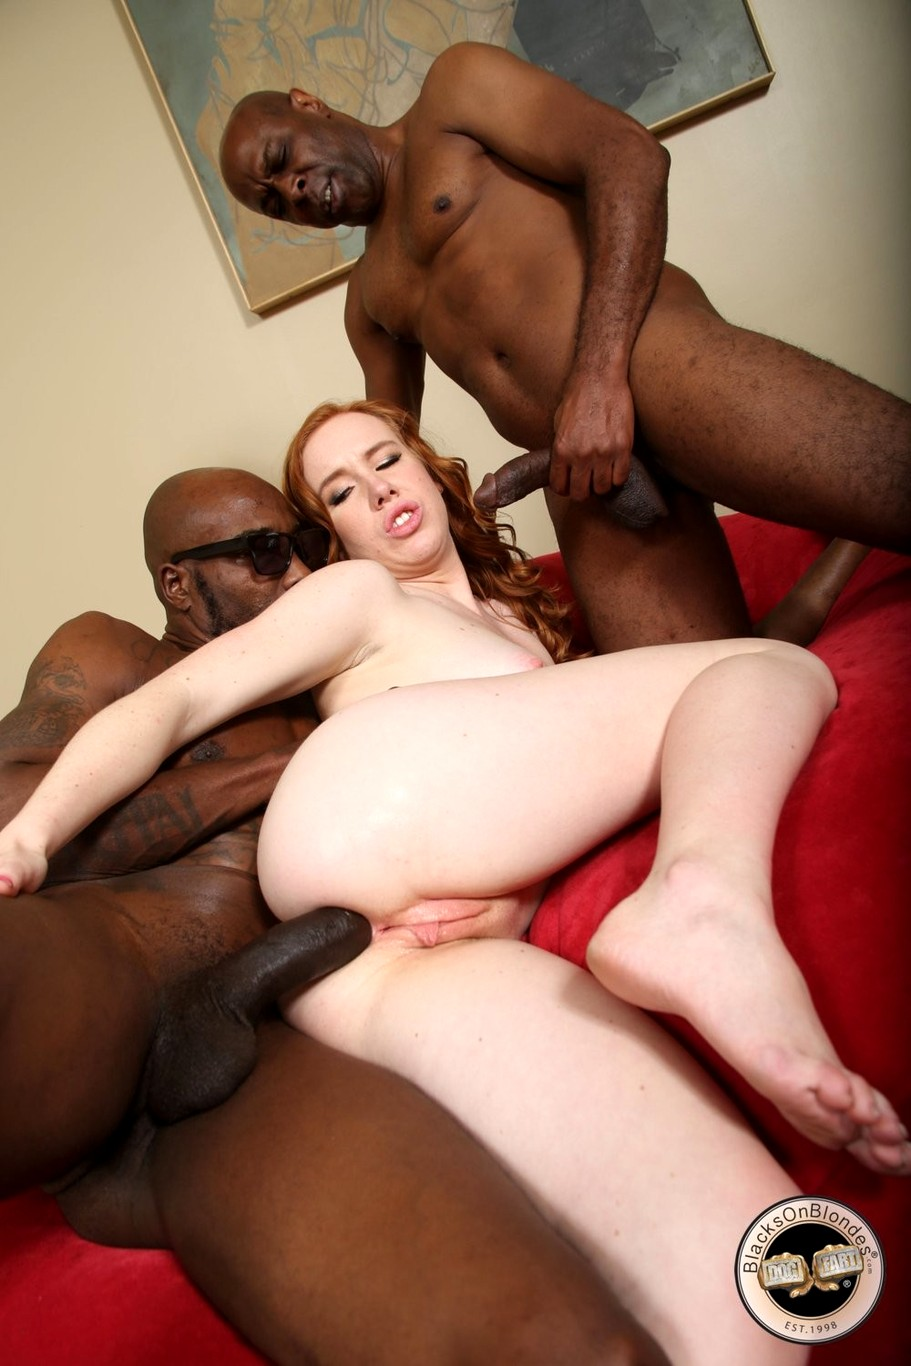 fawna-interracial-porn-video